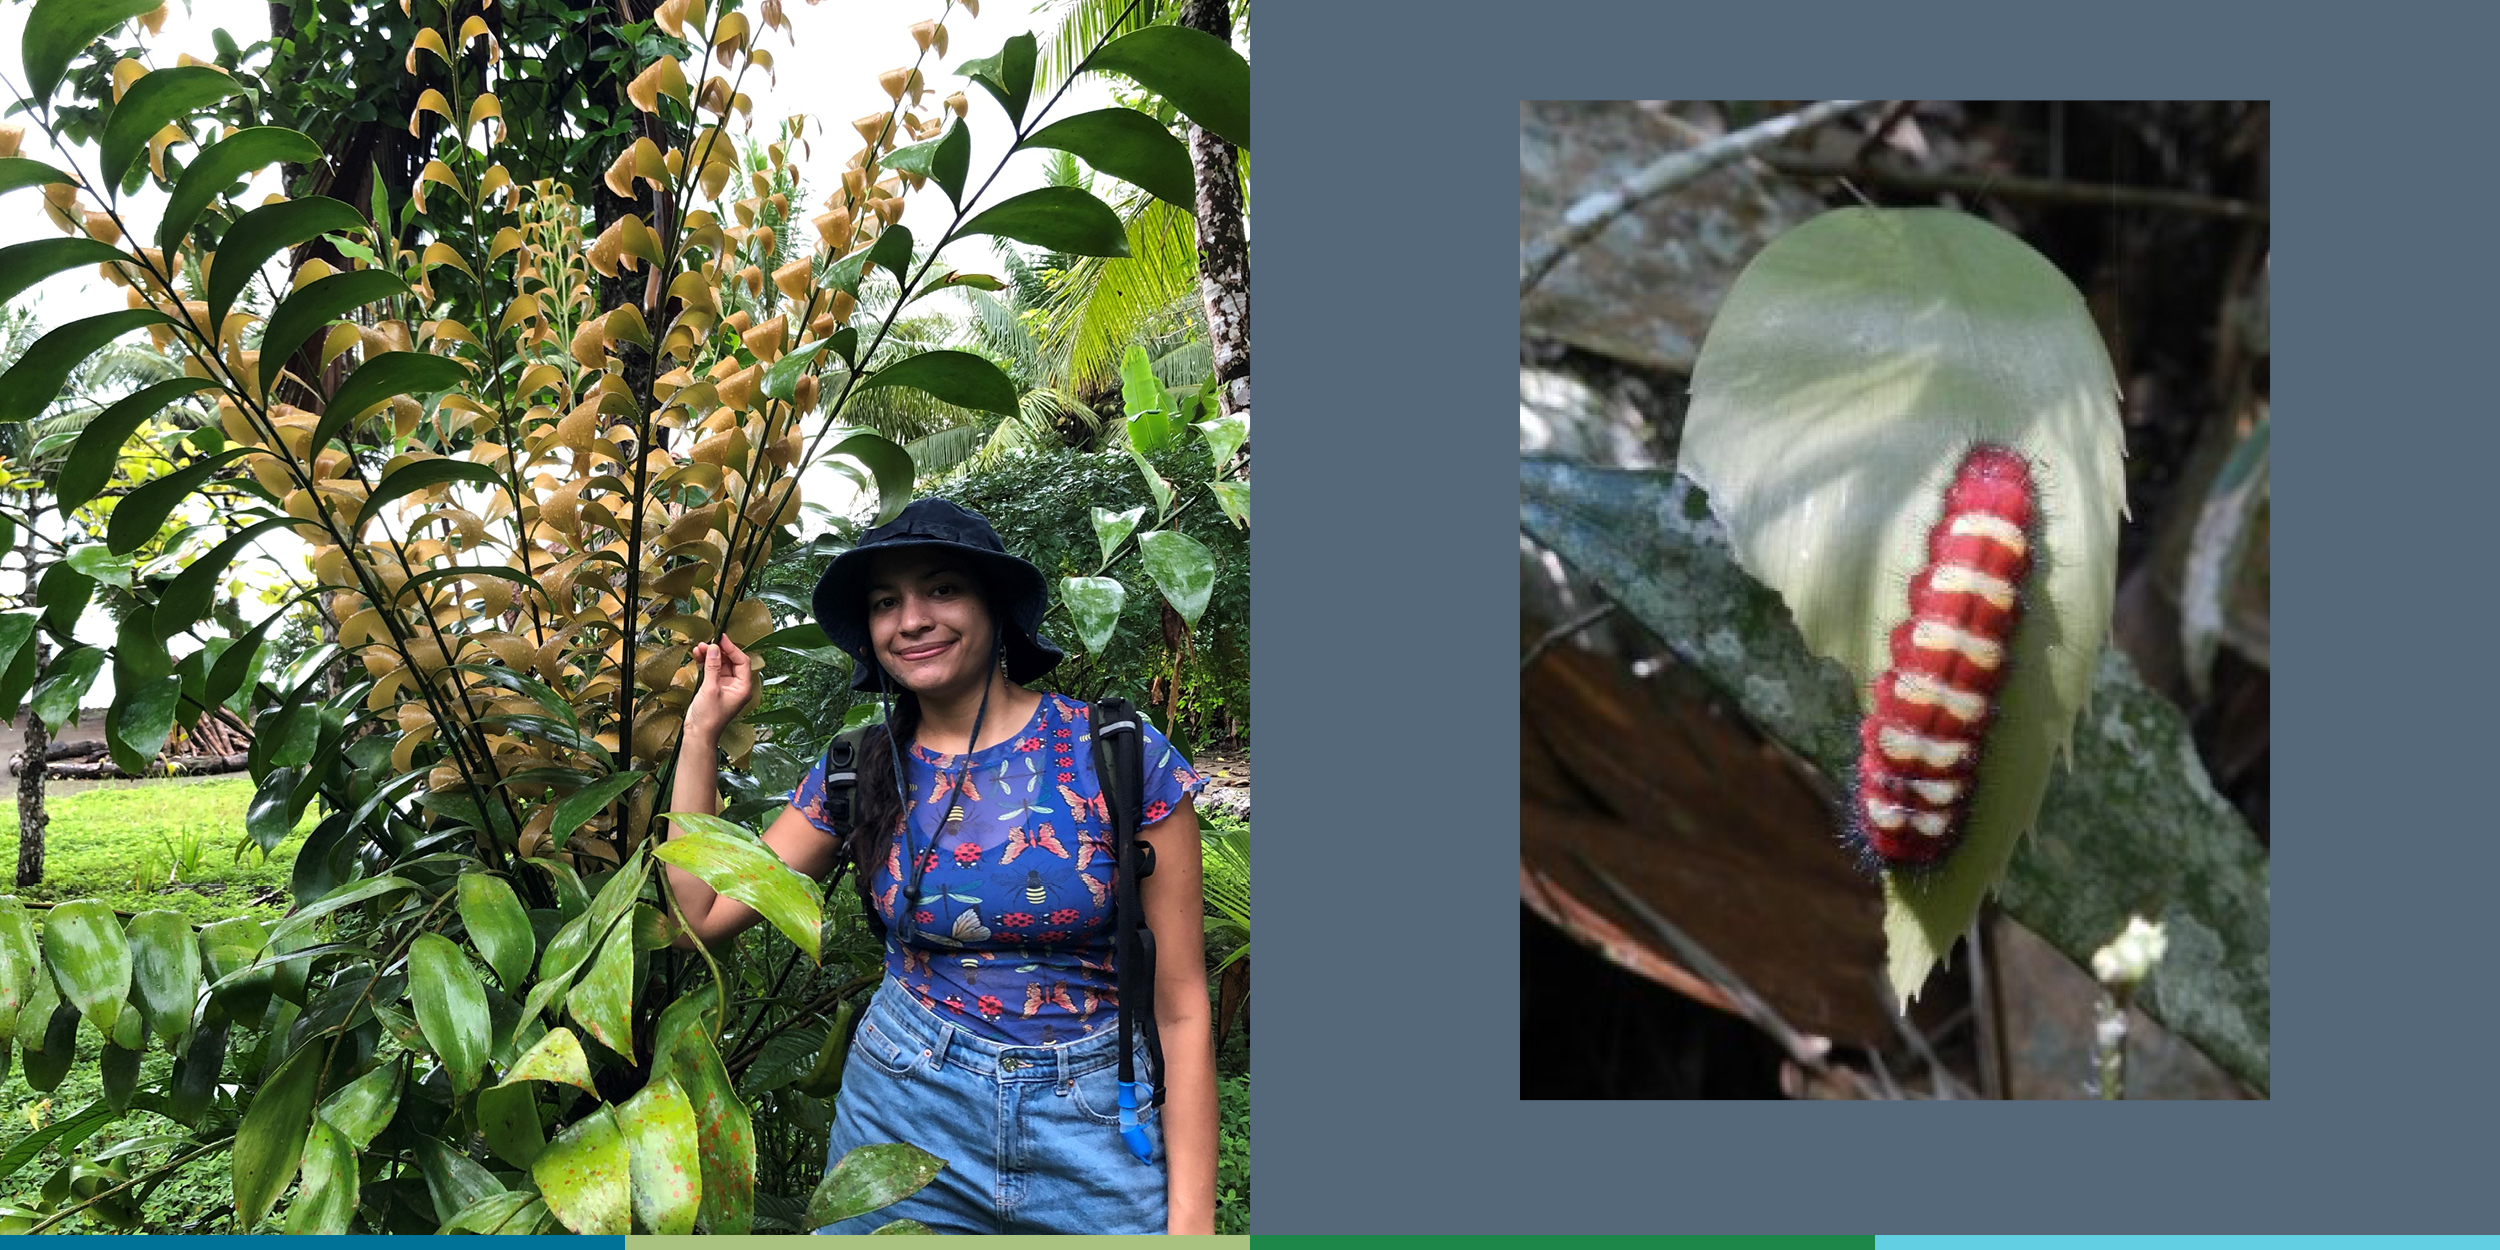 This composite image shows, on the left, a smiling young woman standing beside a green and brown cycad bush and, on the right, a distinctively marked red and cream colored caterpillar